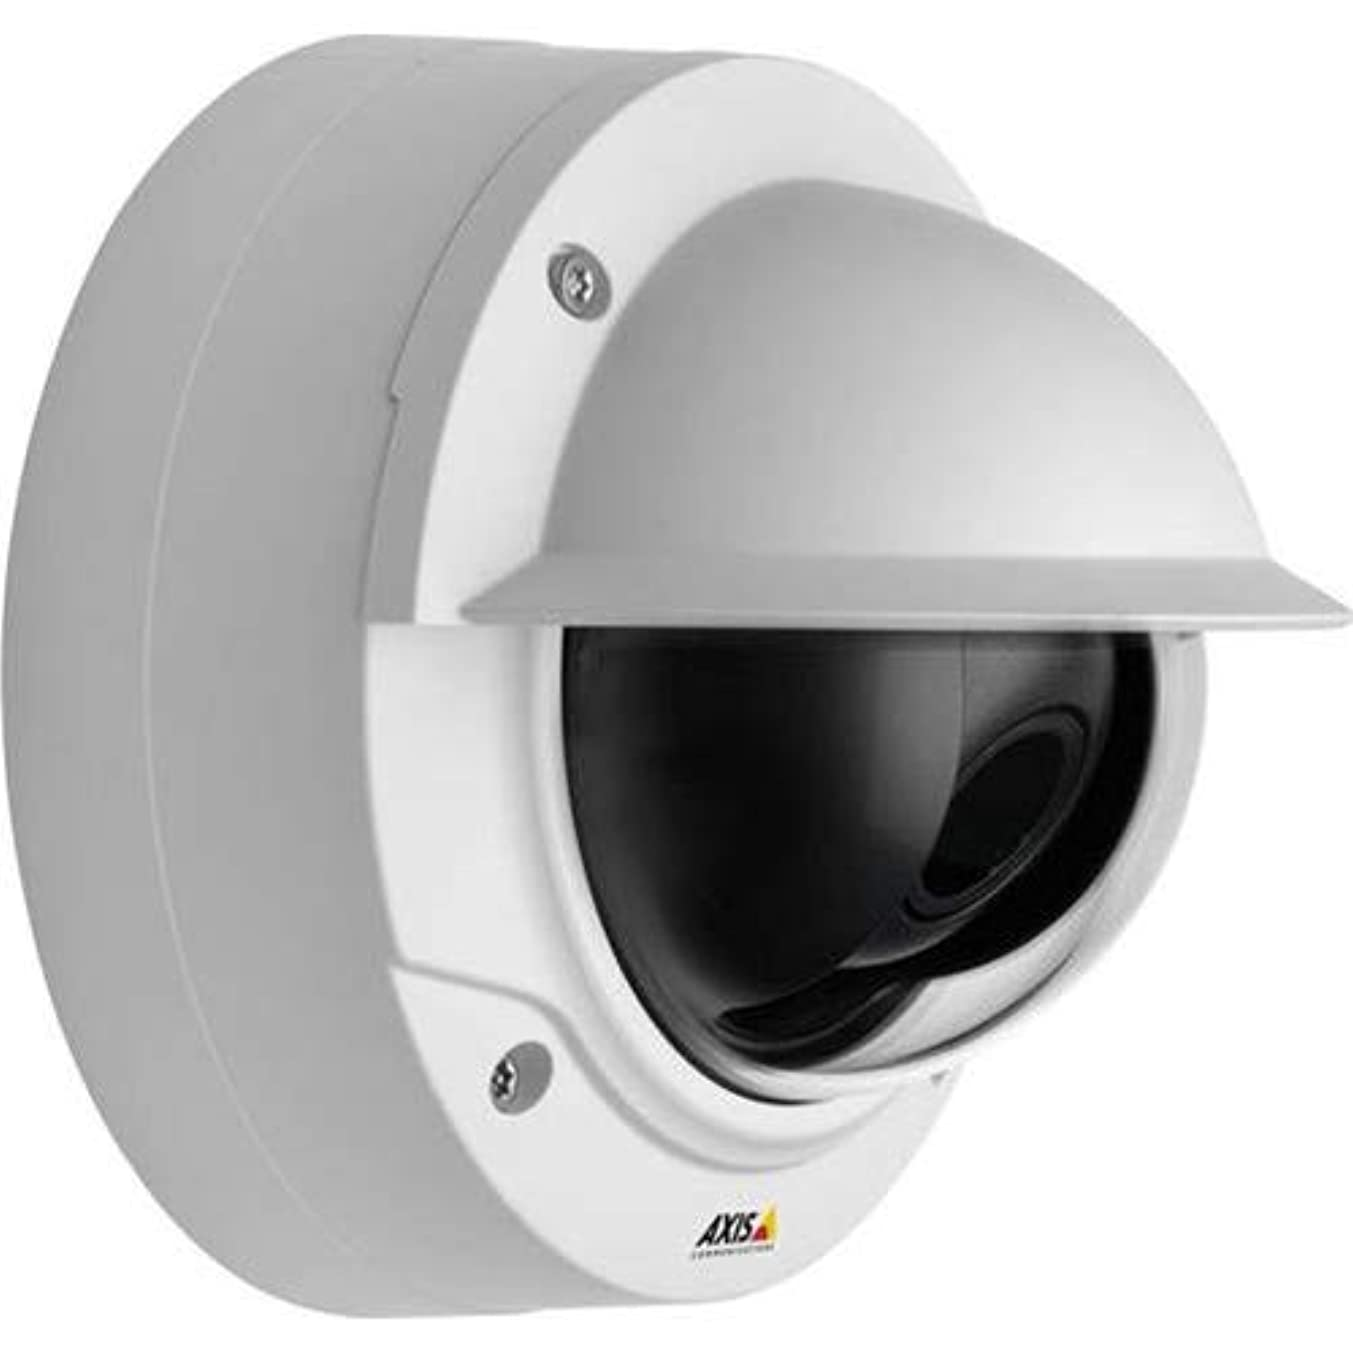 Axis Communications P3225-VE MK II Network Camera - Color 0953-001